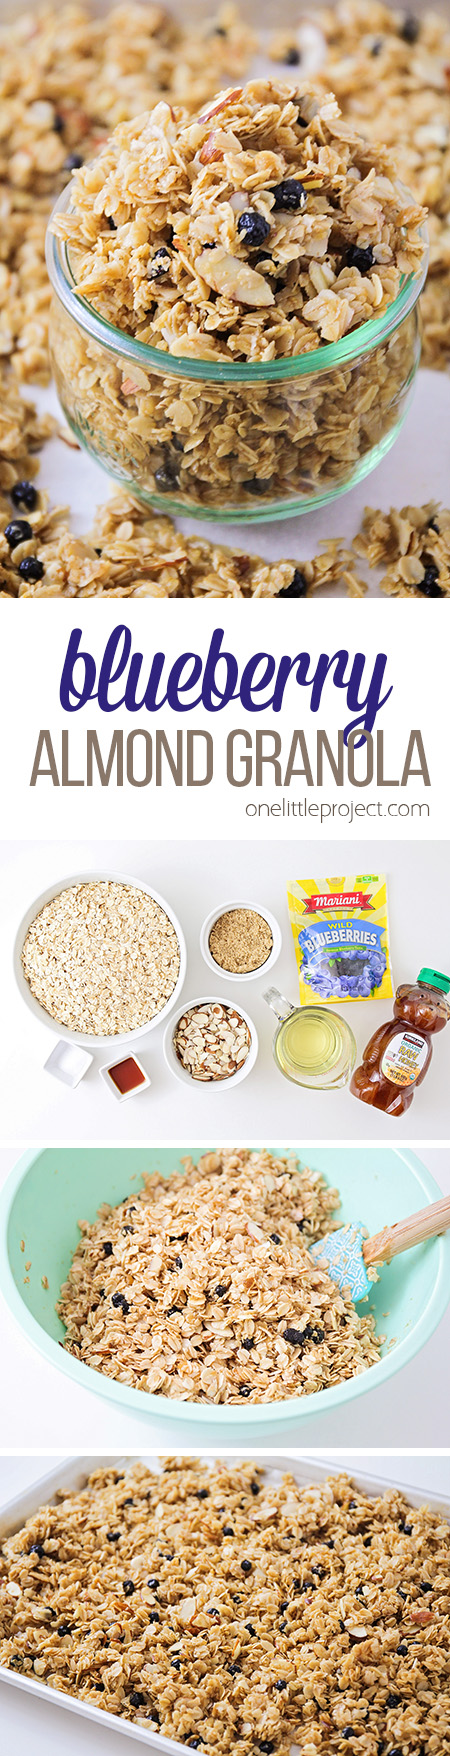 This delicious and crisp blueberry almond granola is so easy to make at home, and incredibly delicious! It makes a fantastic breakfast or snack!